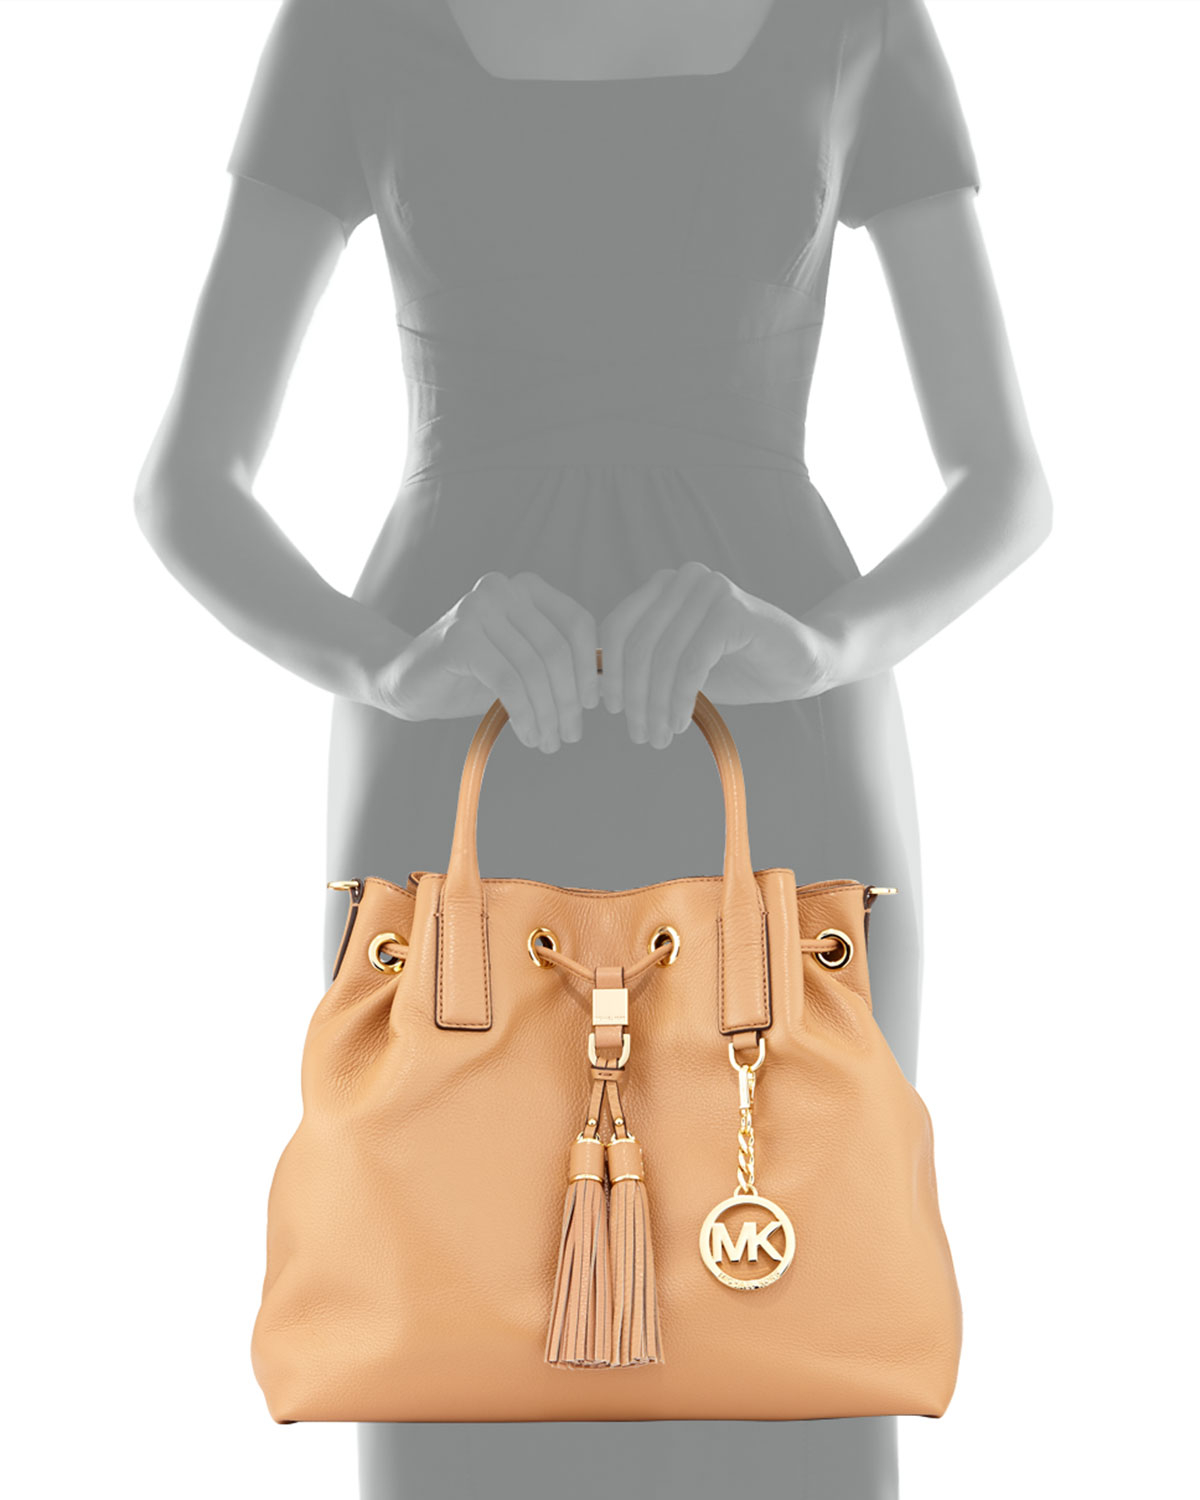 7f233ae5a45a Gallery. Previously sold at: Neiman Marcus · Women's Michael Kors Camden